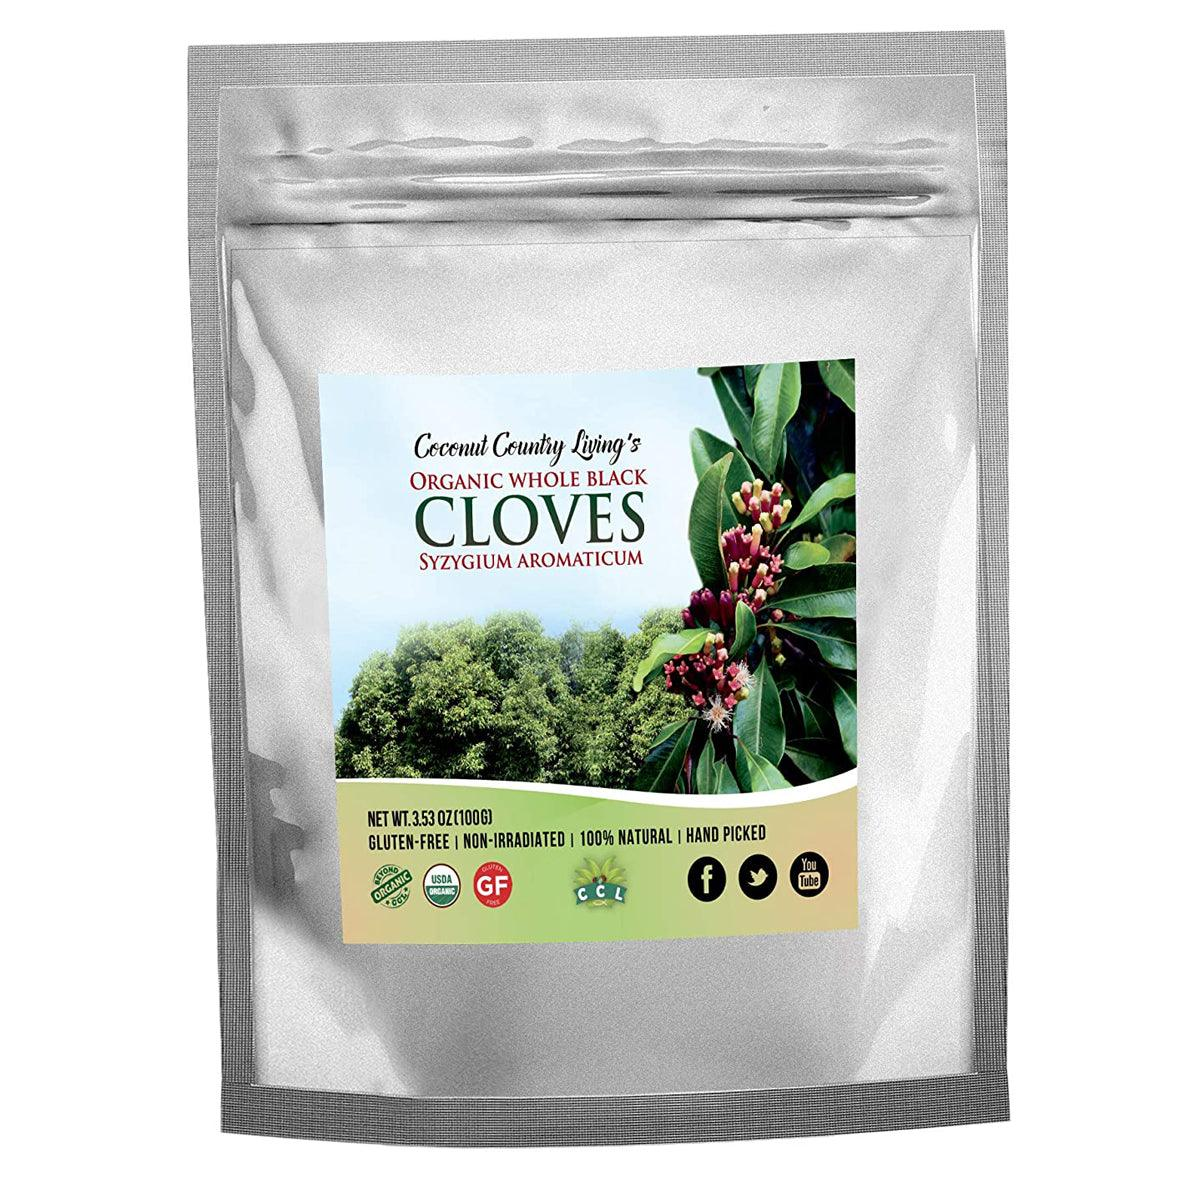 CCL Organic Cloves Whole - Free E-Book of Secrets of Cloves and Gourmet Recipes - USDA - USPS Shipping